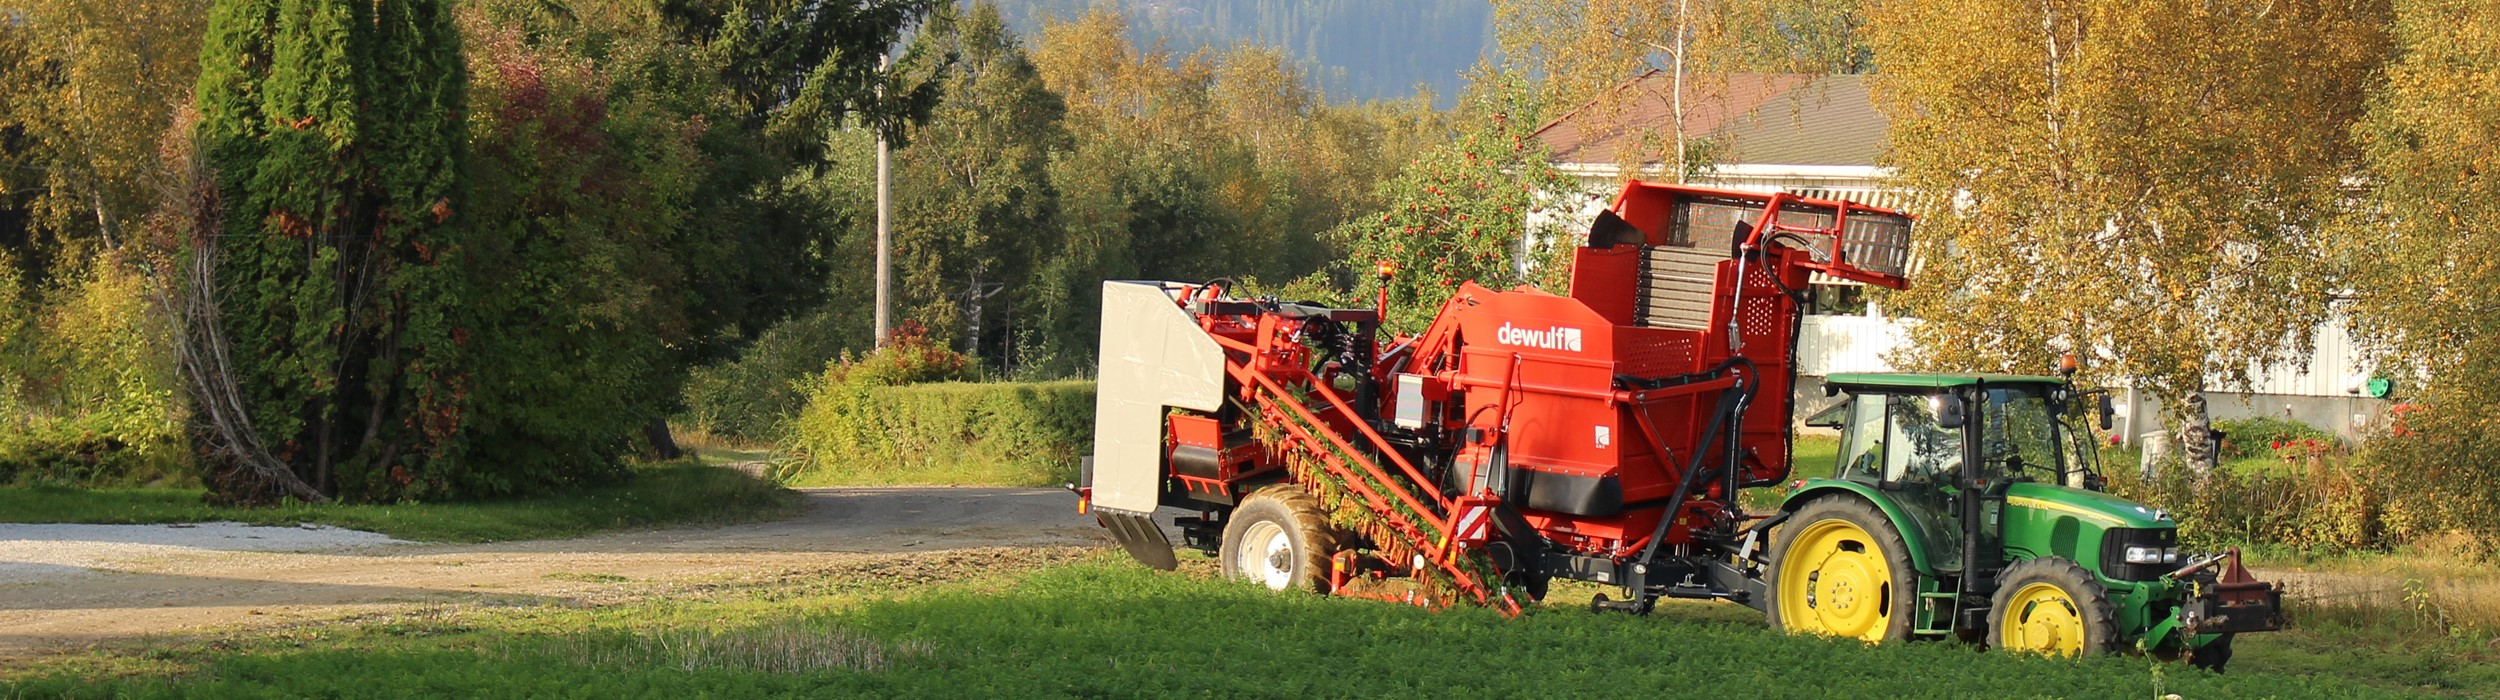 Trailed 1-row top lifting harvester with bunker